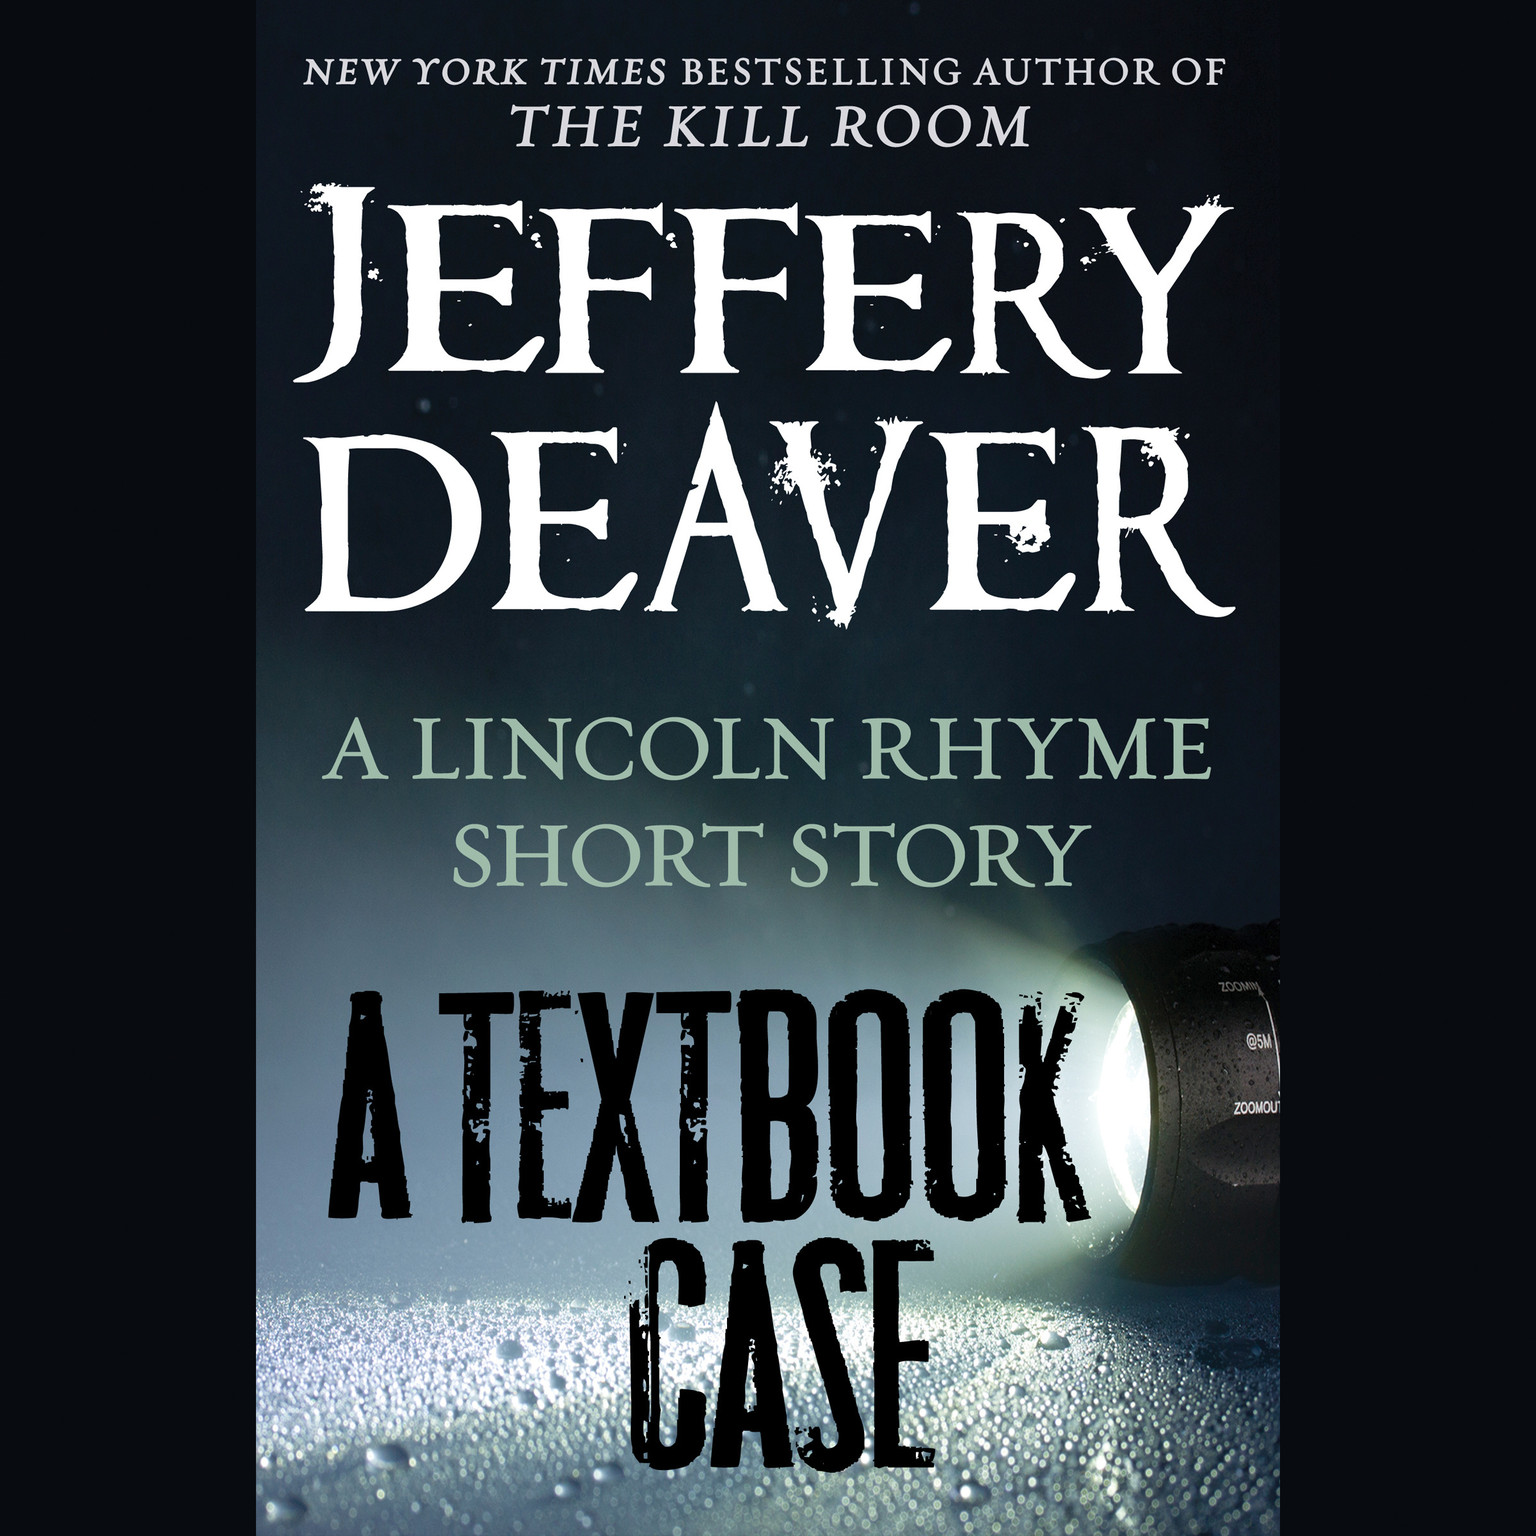 Printable A Textbook Case (a Lincoln Rhyme story): A Lincoln Rhyme Short Story Audiobook Cover Art